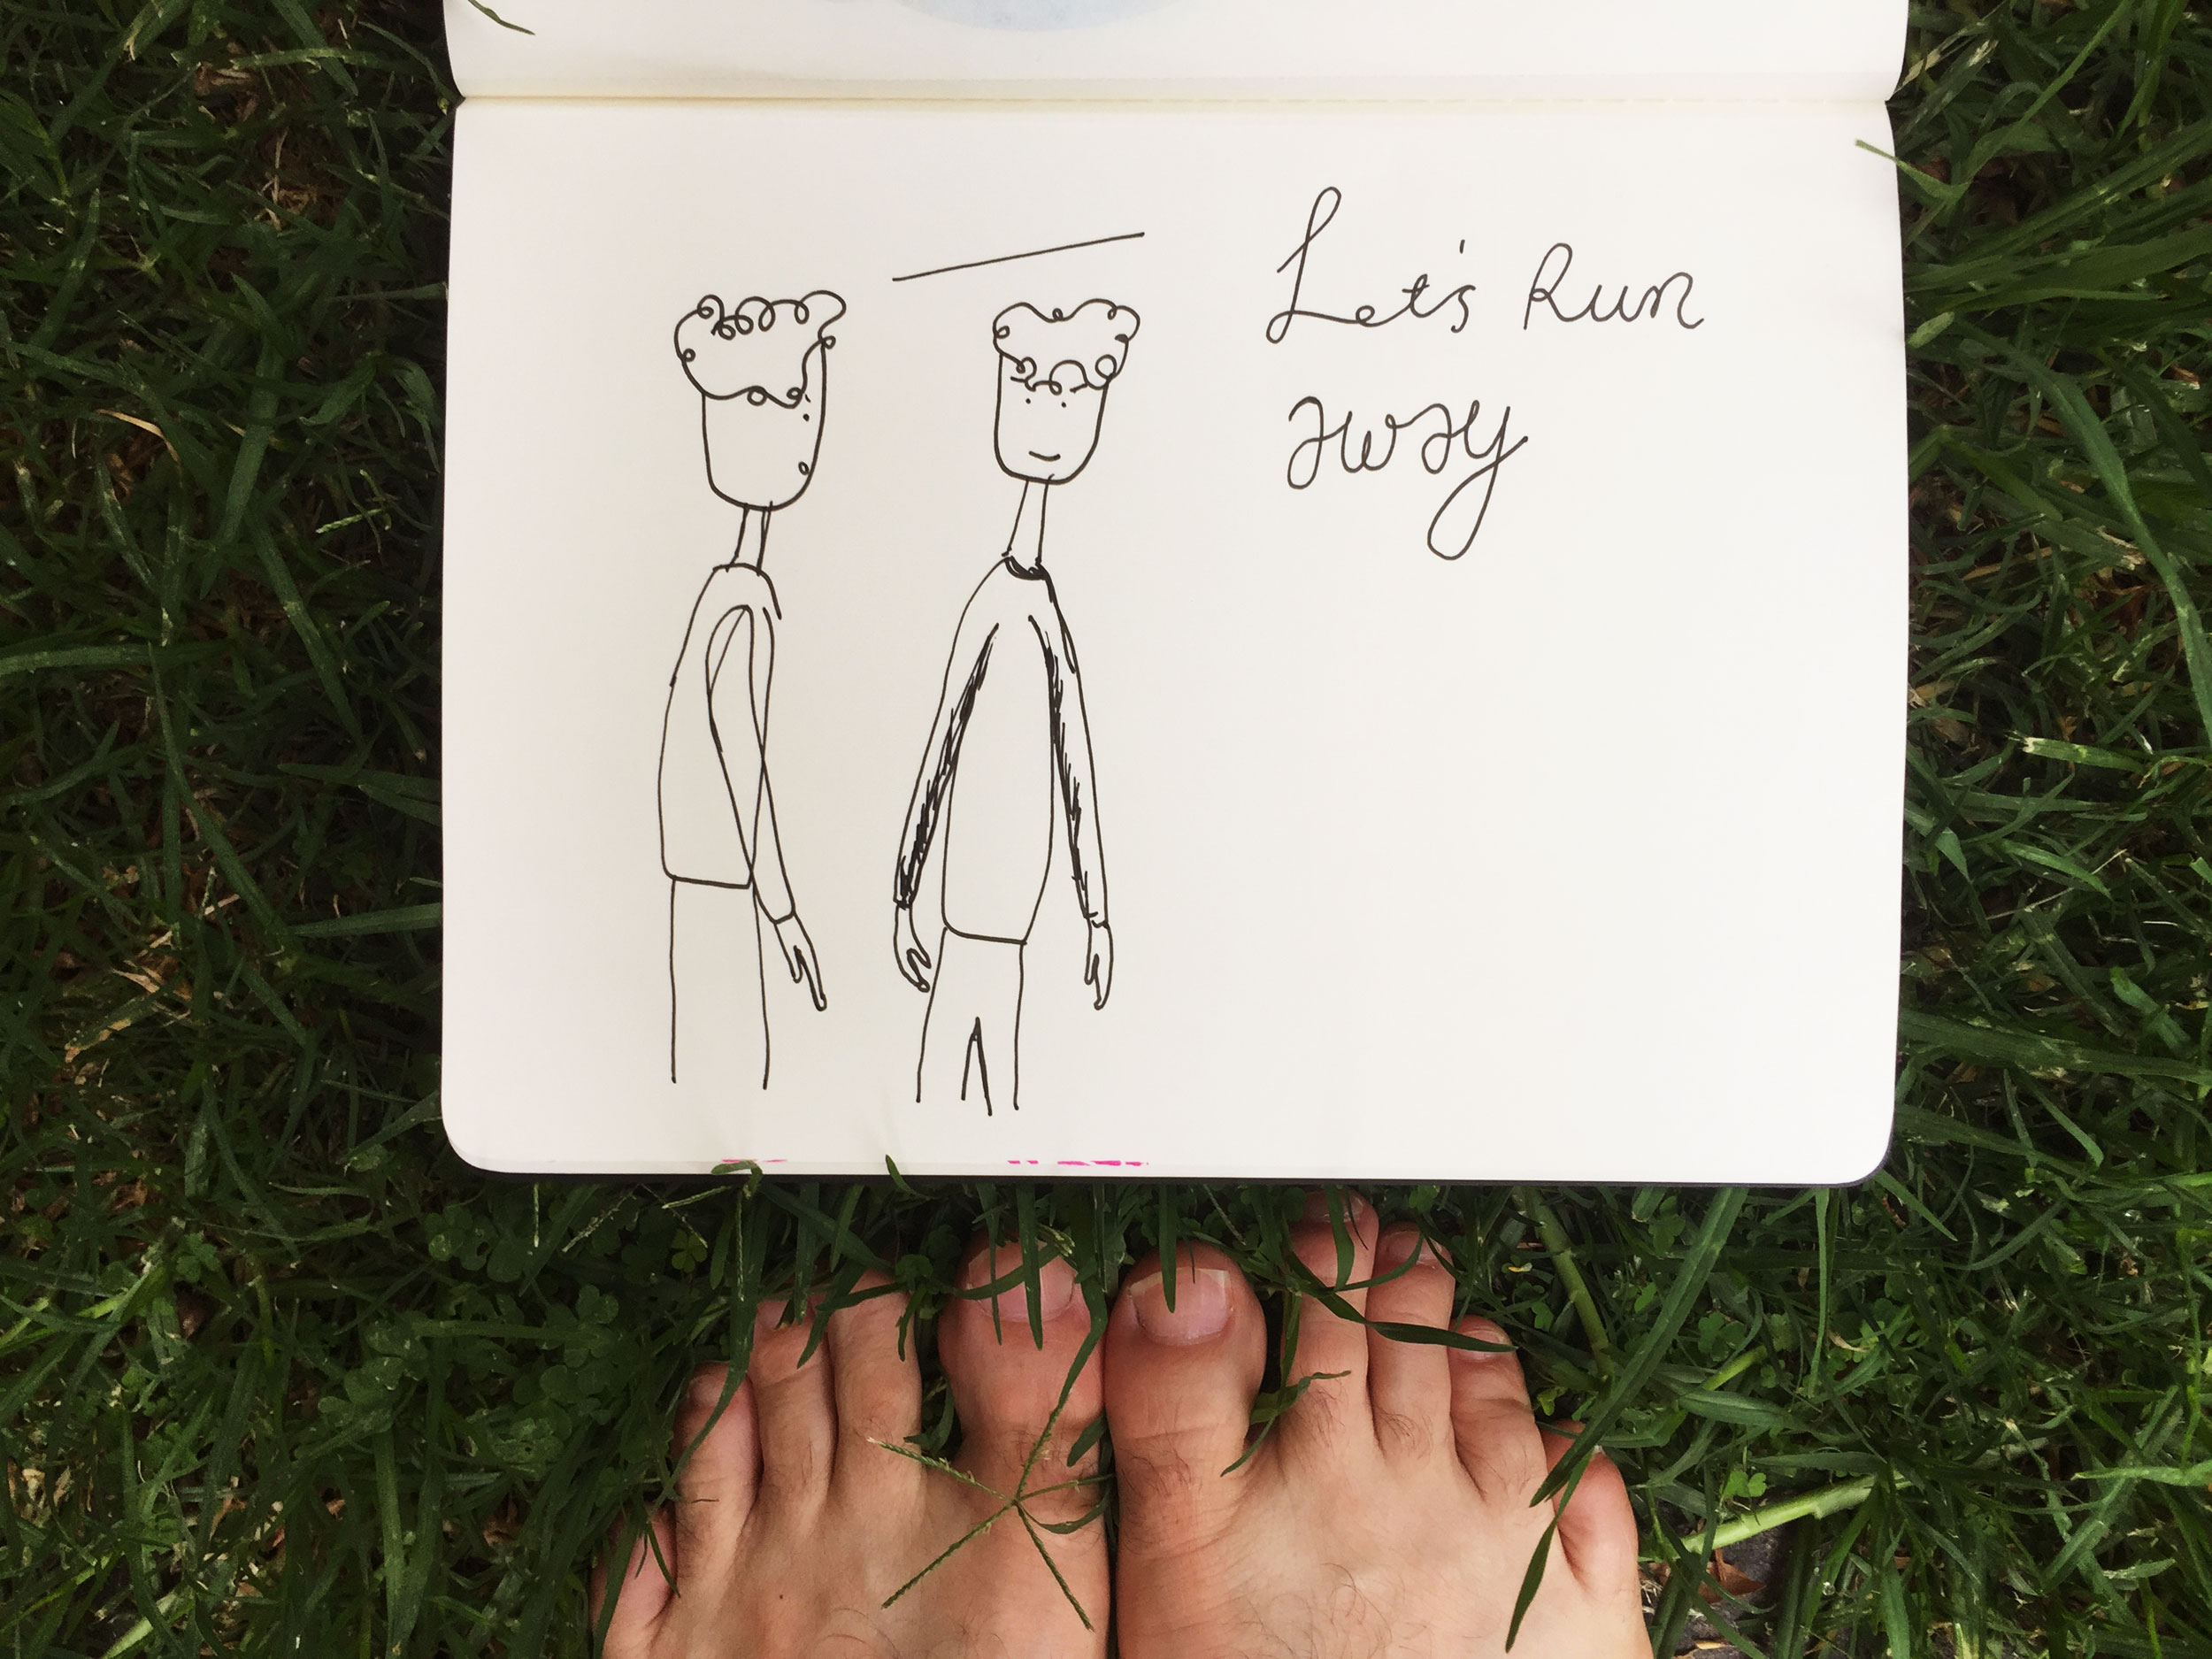 Let's run away. Drawing Luke Hockley.